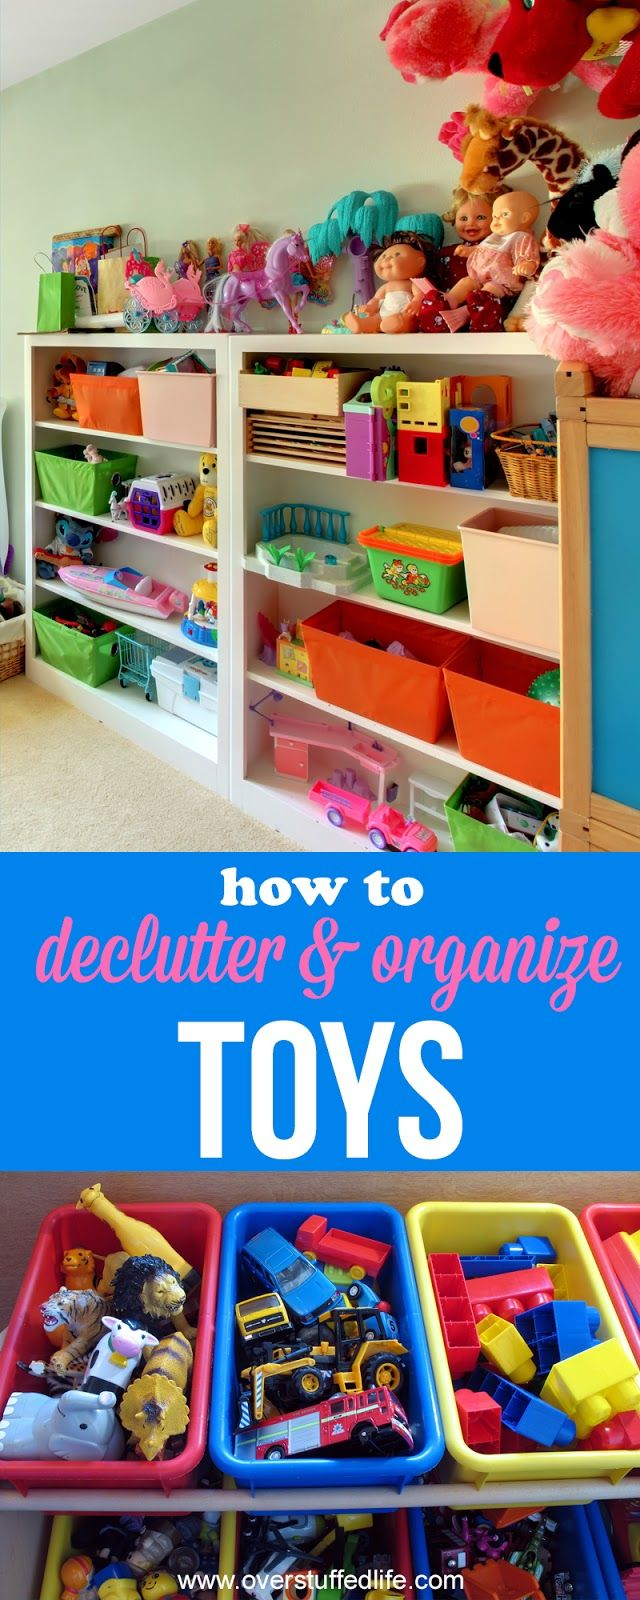 toy organization | organize play room | toy storage ideas| Organize American Girl Doll clothes and accessories | tips to declutter kids toys | how to get rid of toys | ideas for organizing and decluttering toys | get rid of toy clutter | clean play room